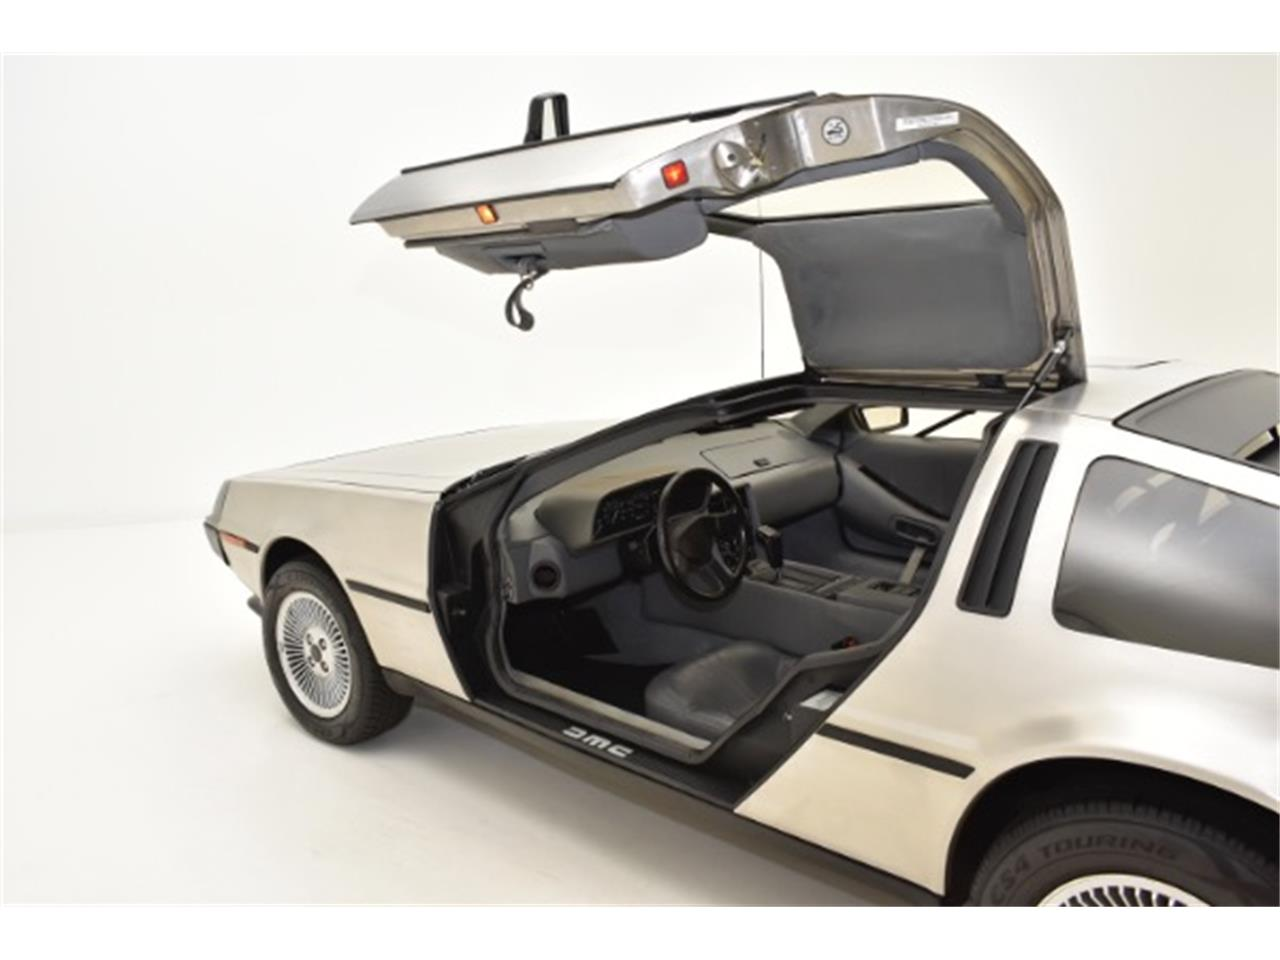 Large Picture of '81 DeLorean DMC-12 located in Syosset New York Offered by Champion Motors International - L5D0